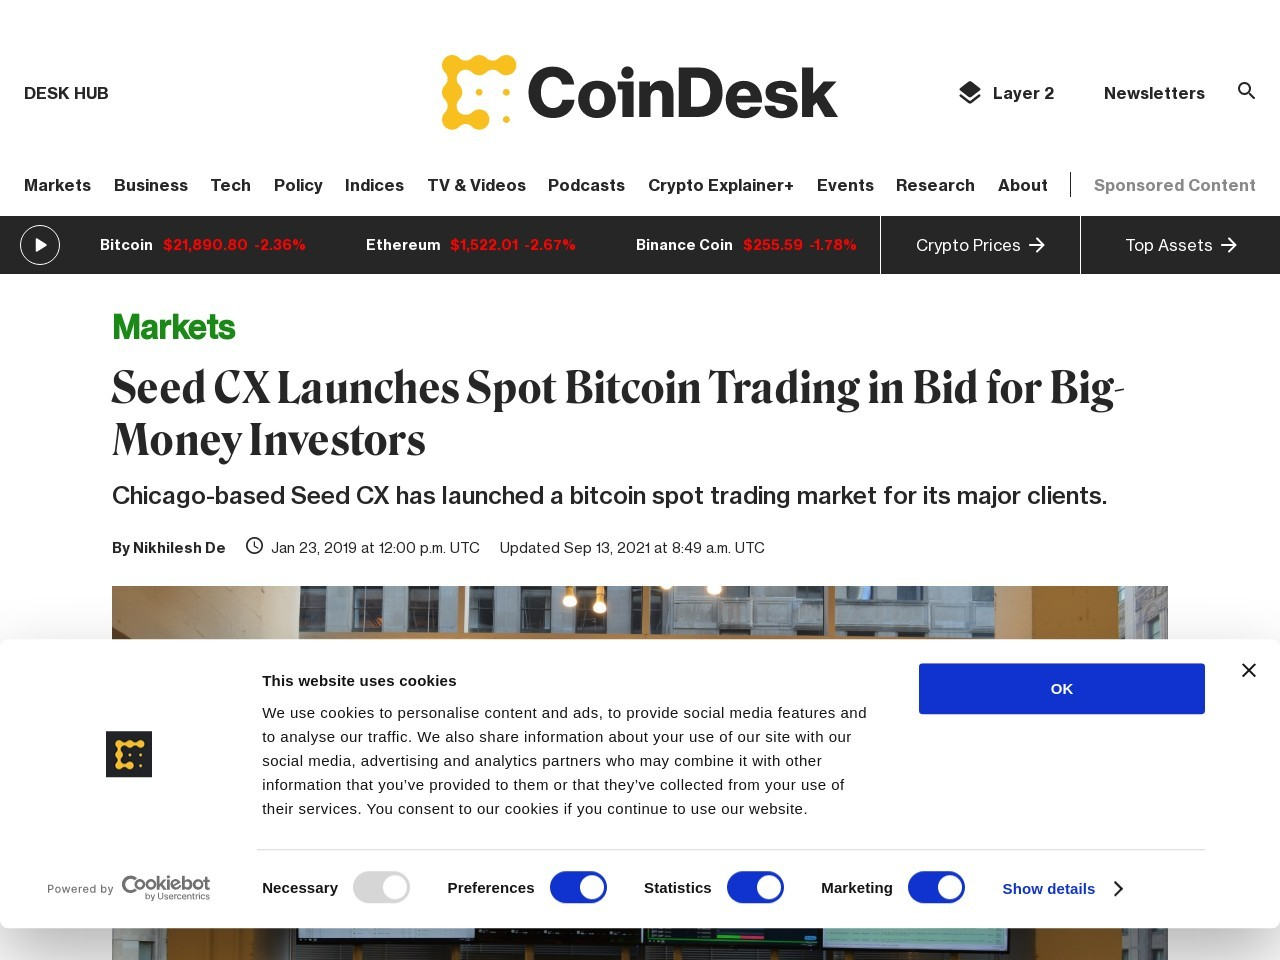 Seed CX Launches Spot Bitcoin Trading in Bid for Big-Money Investors